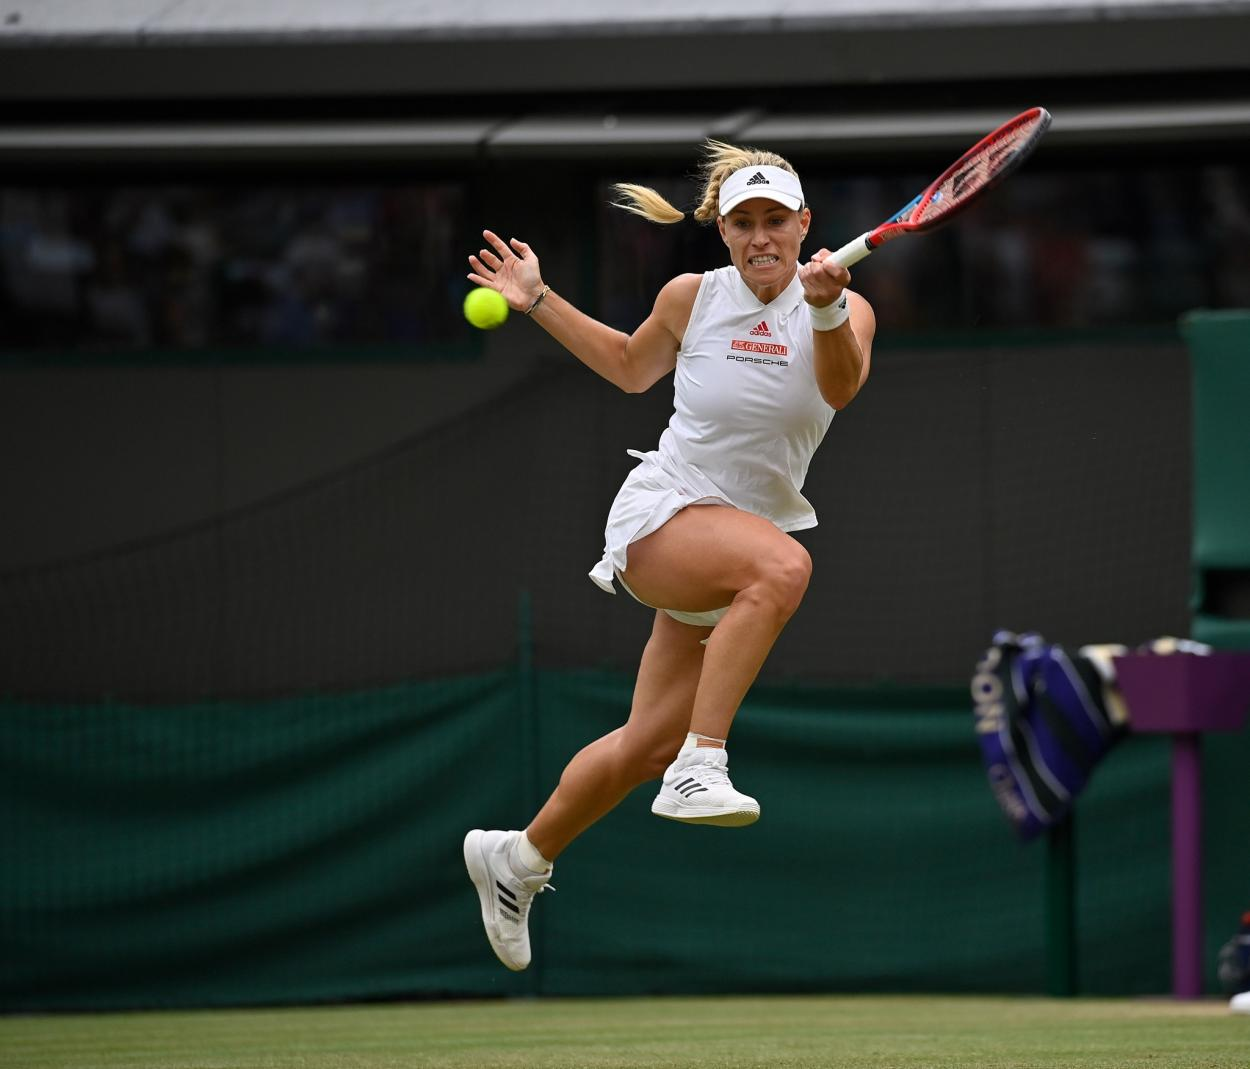 Kerber in action at the 2021 Wimbledon Championships where she posted a semifinal result. Photo: Paul Zimmer